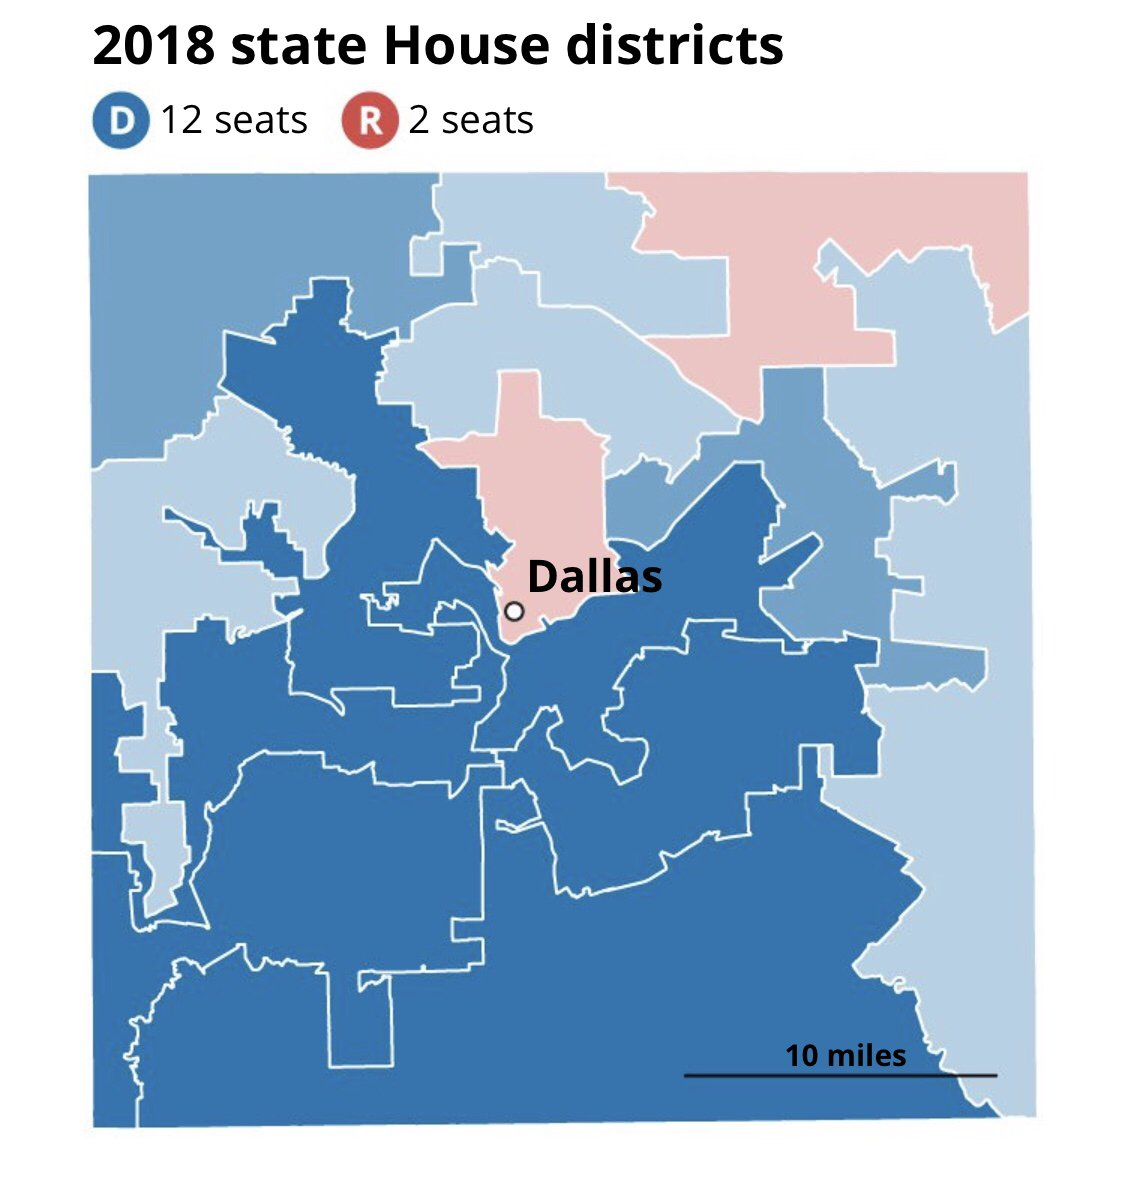 10/ And now it's 2018. Republicans hold onto two of the 14 seats. They used to hold 8.  https:// bit.ly/2RFwqiz  &nbsp;    #Midterms2018 #Election2018 #tx2018 #txlege<br>http://pic.twitter.com/3xTQeCWgUc